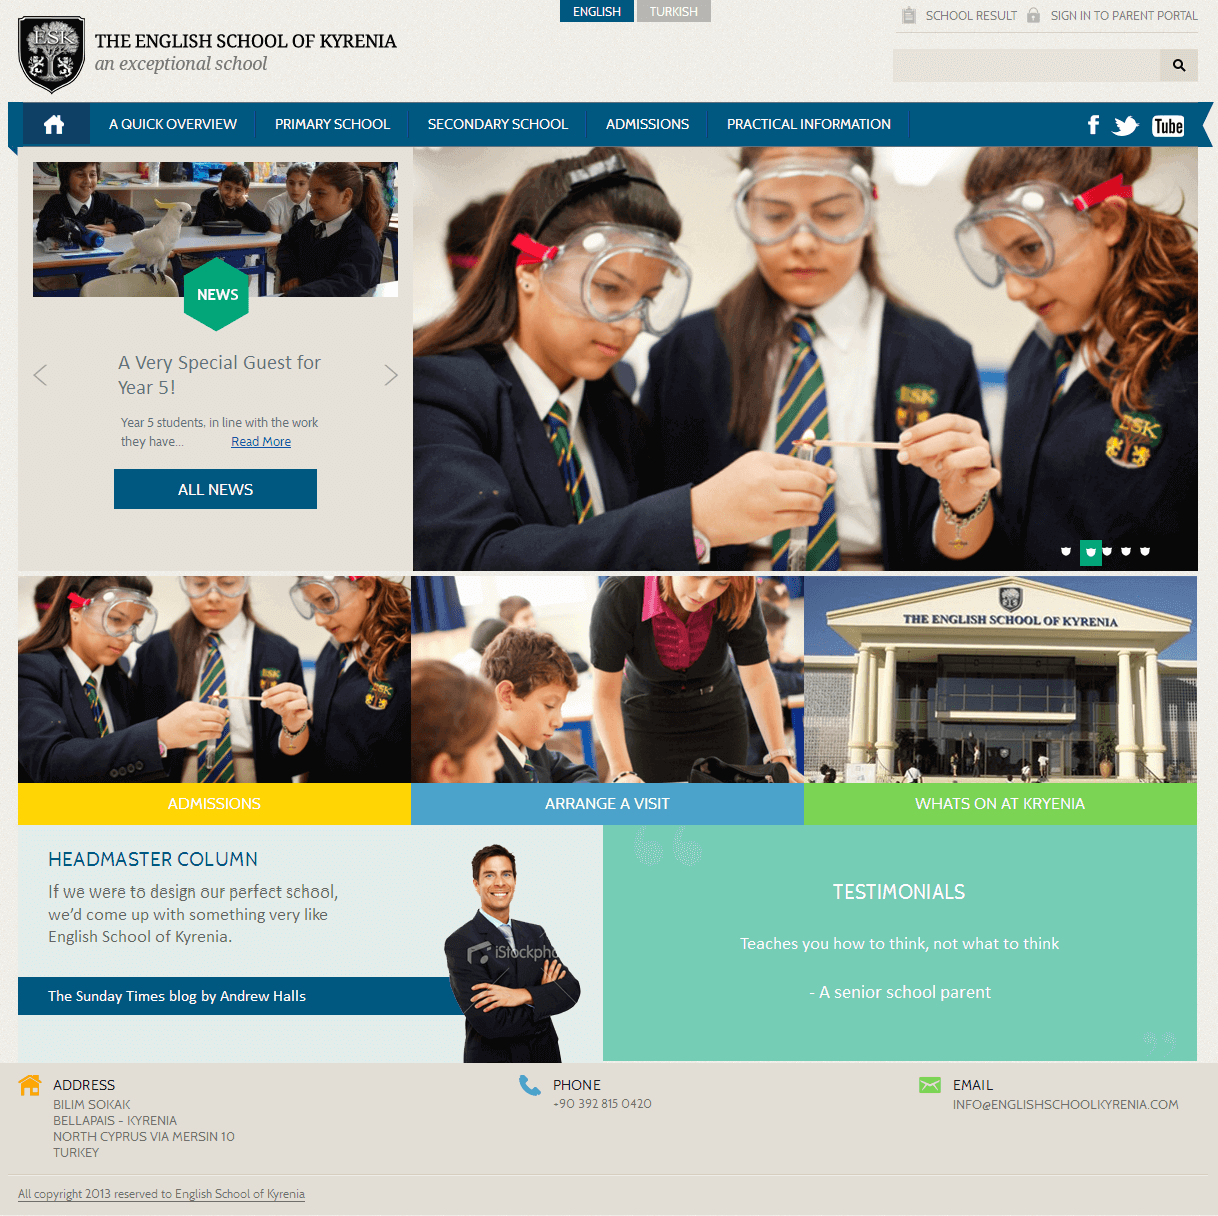 Development of a Drupal Based Website for a School